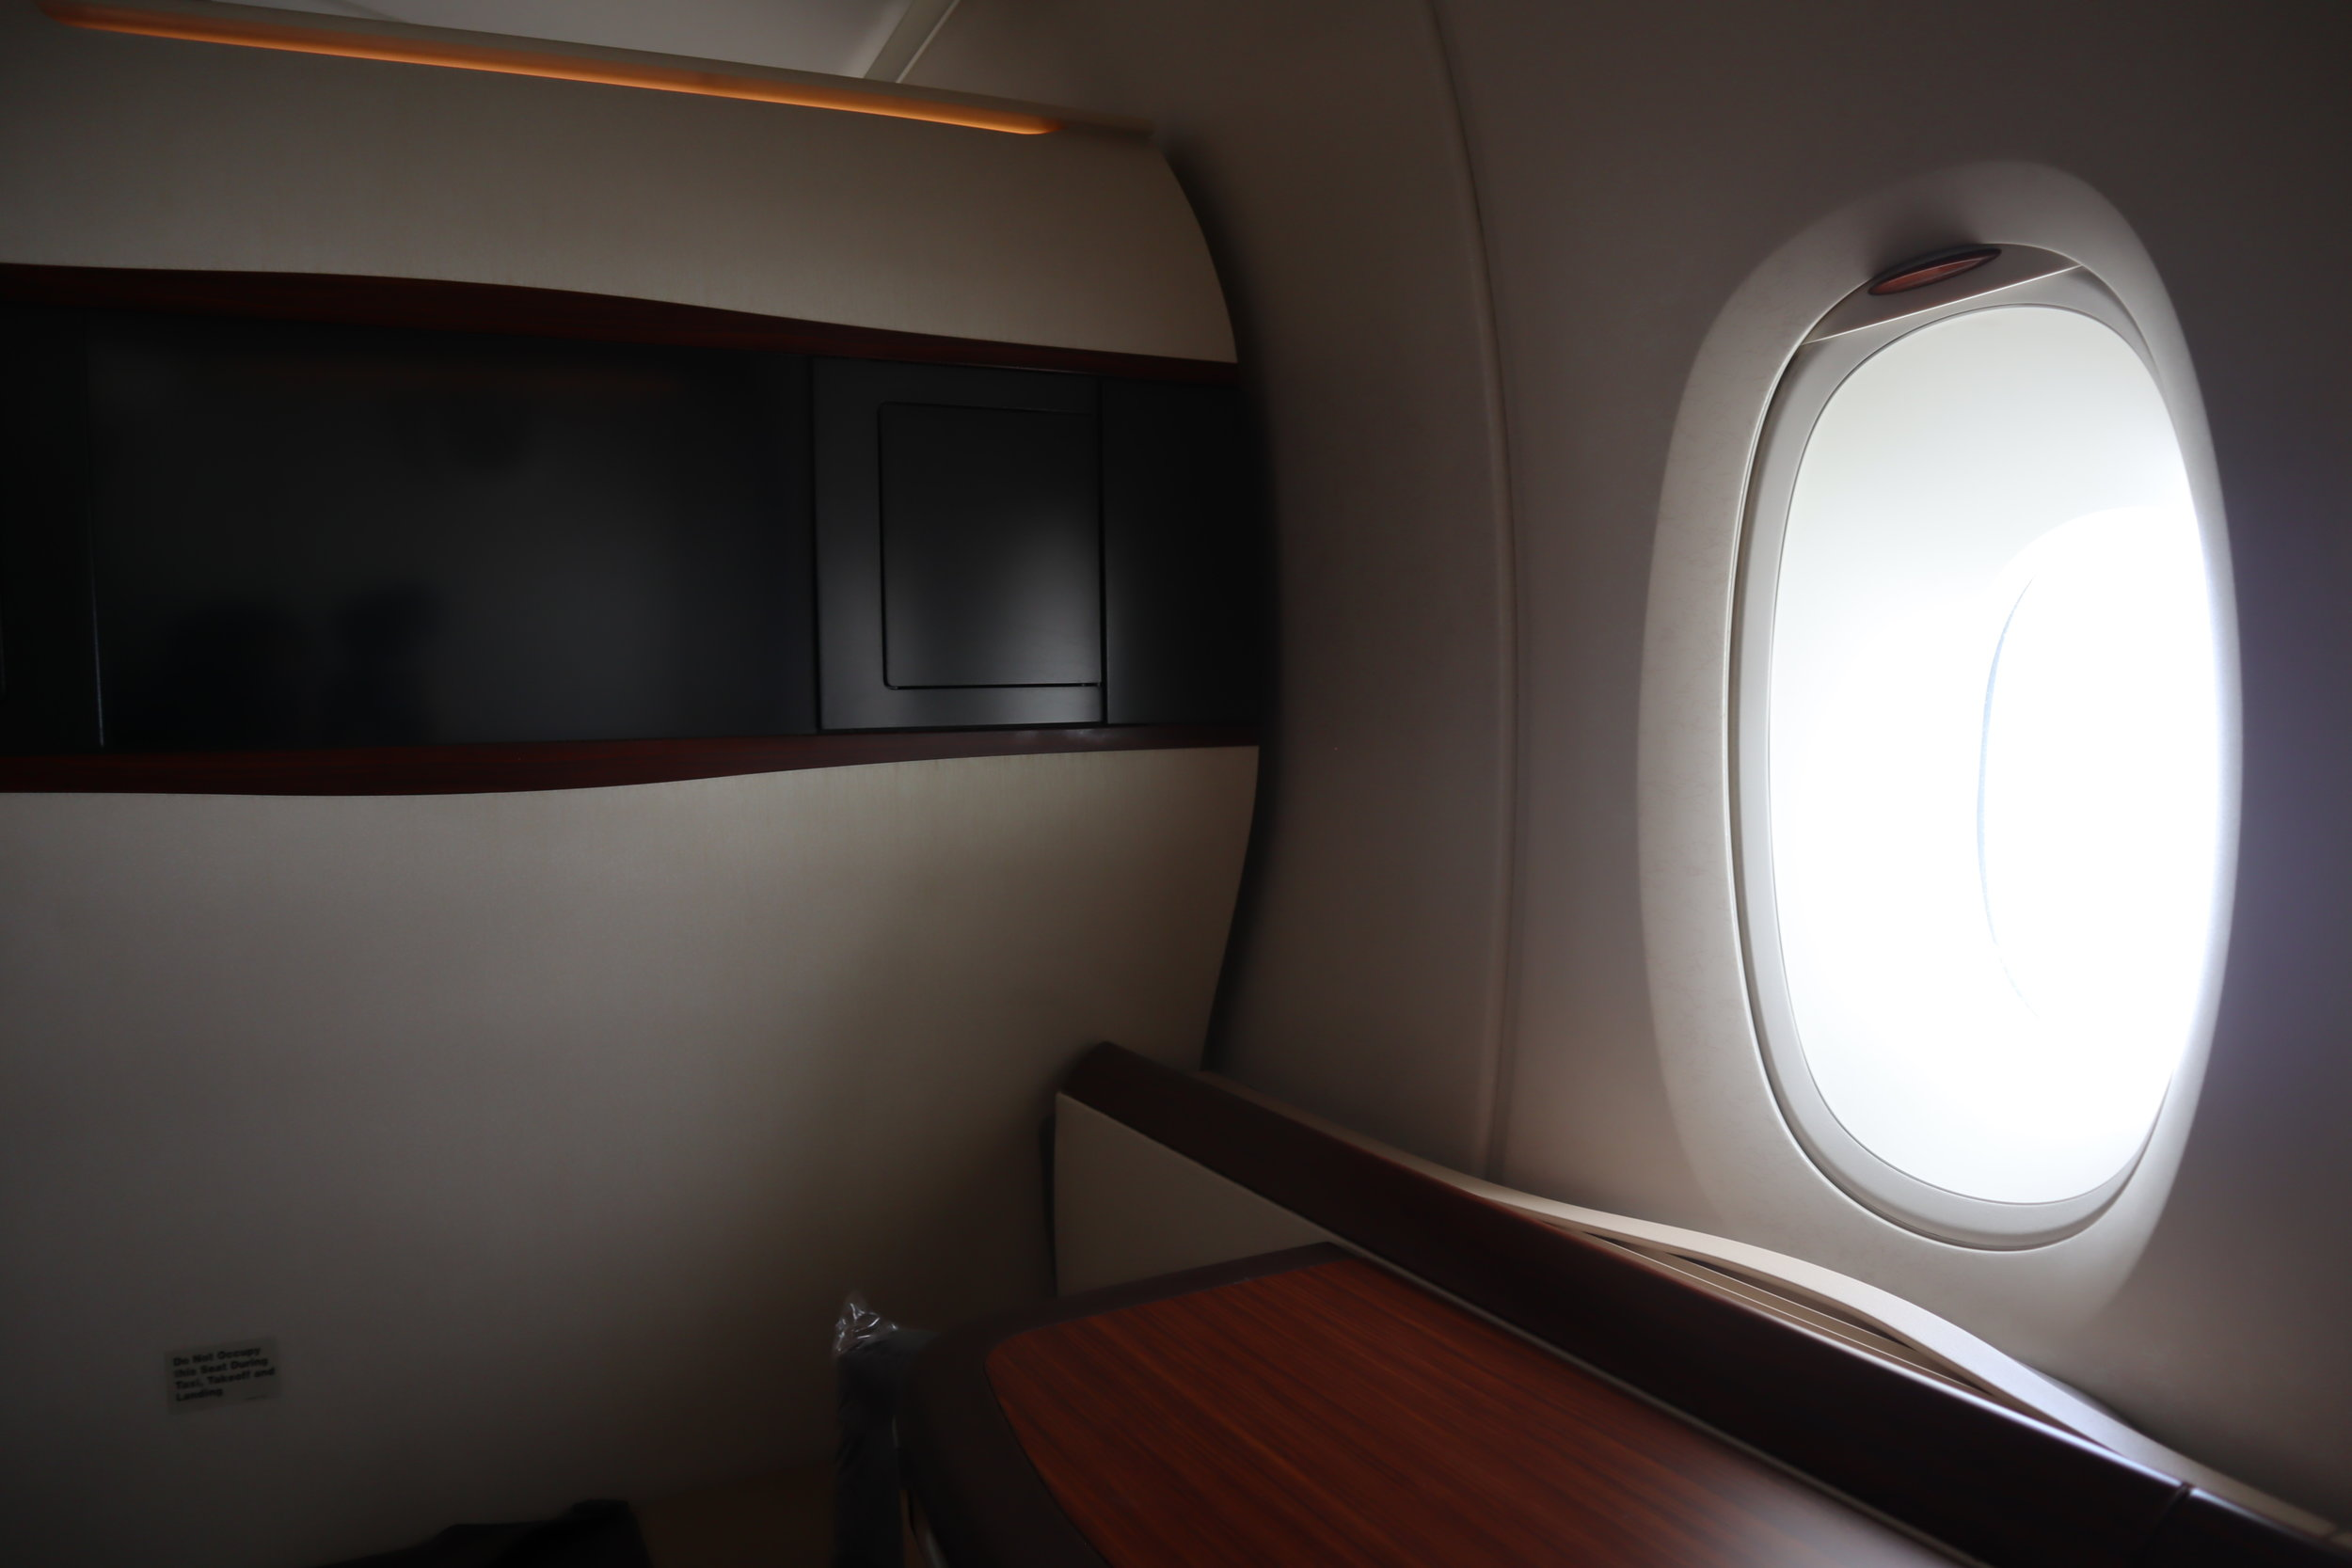 Singapore Airlines Suites Class – Window seat